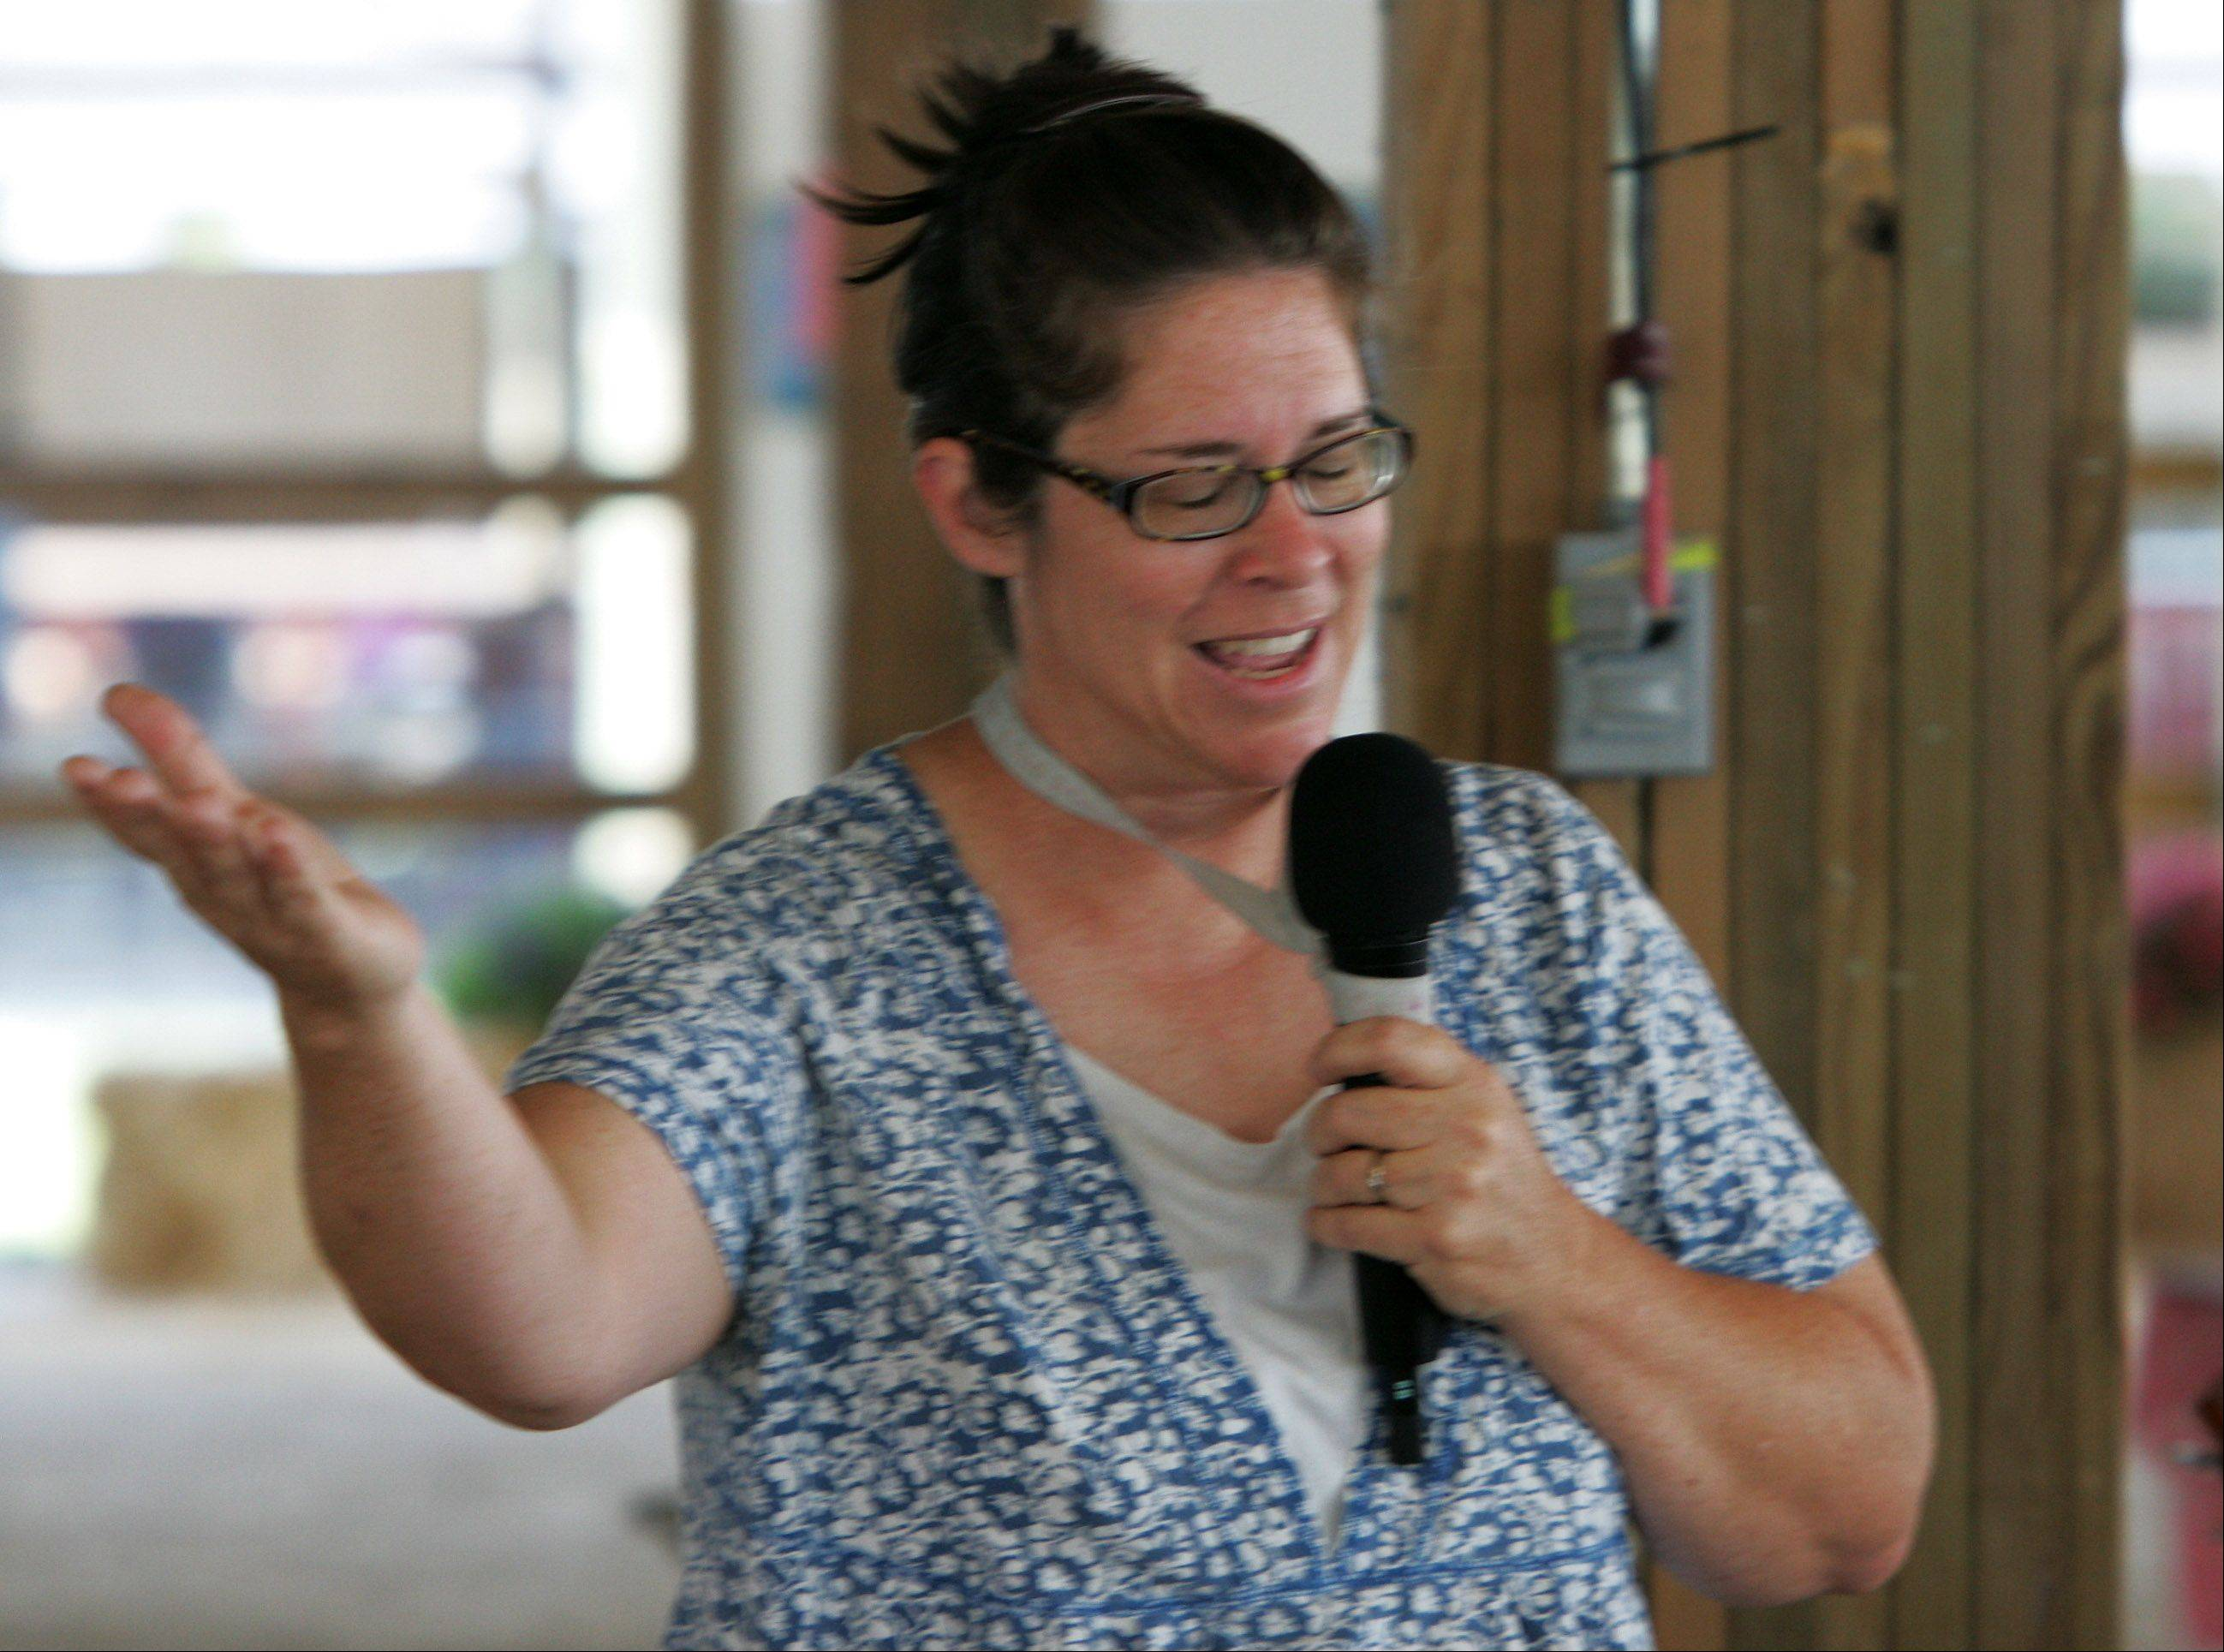 The Sunday morning service is conducted by Sarah Presley-James of United Protestant Church in Grayslake during last day of the 84th Annual Lake County Fair in Grayslake.